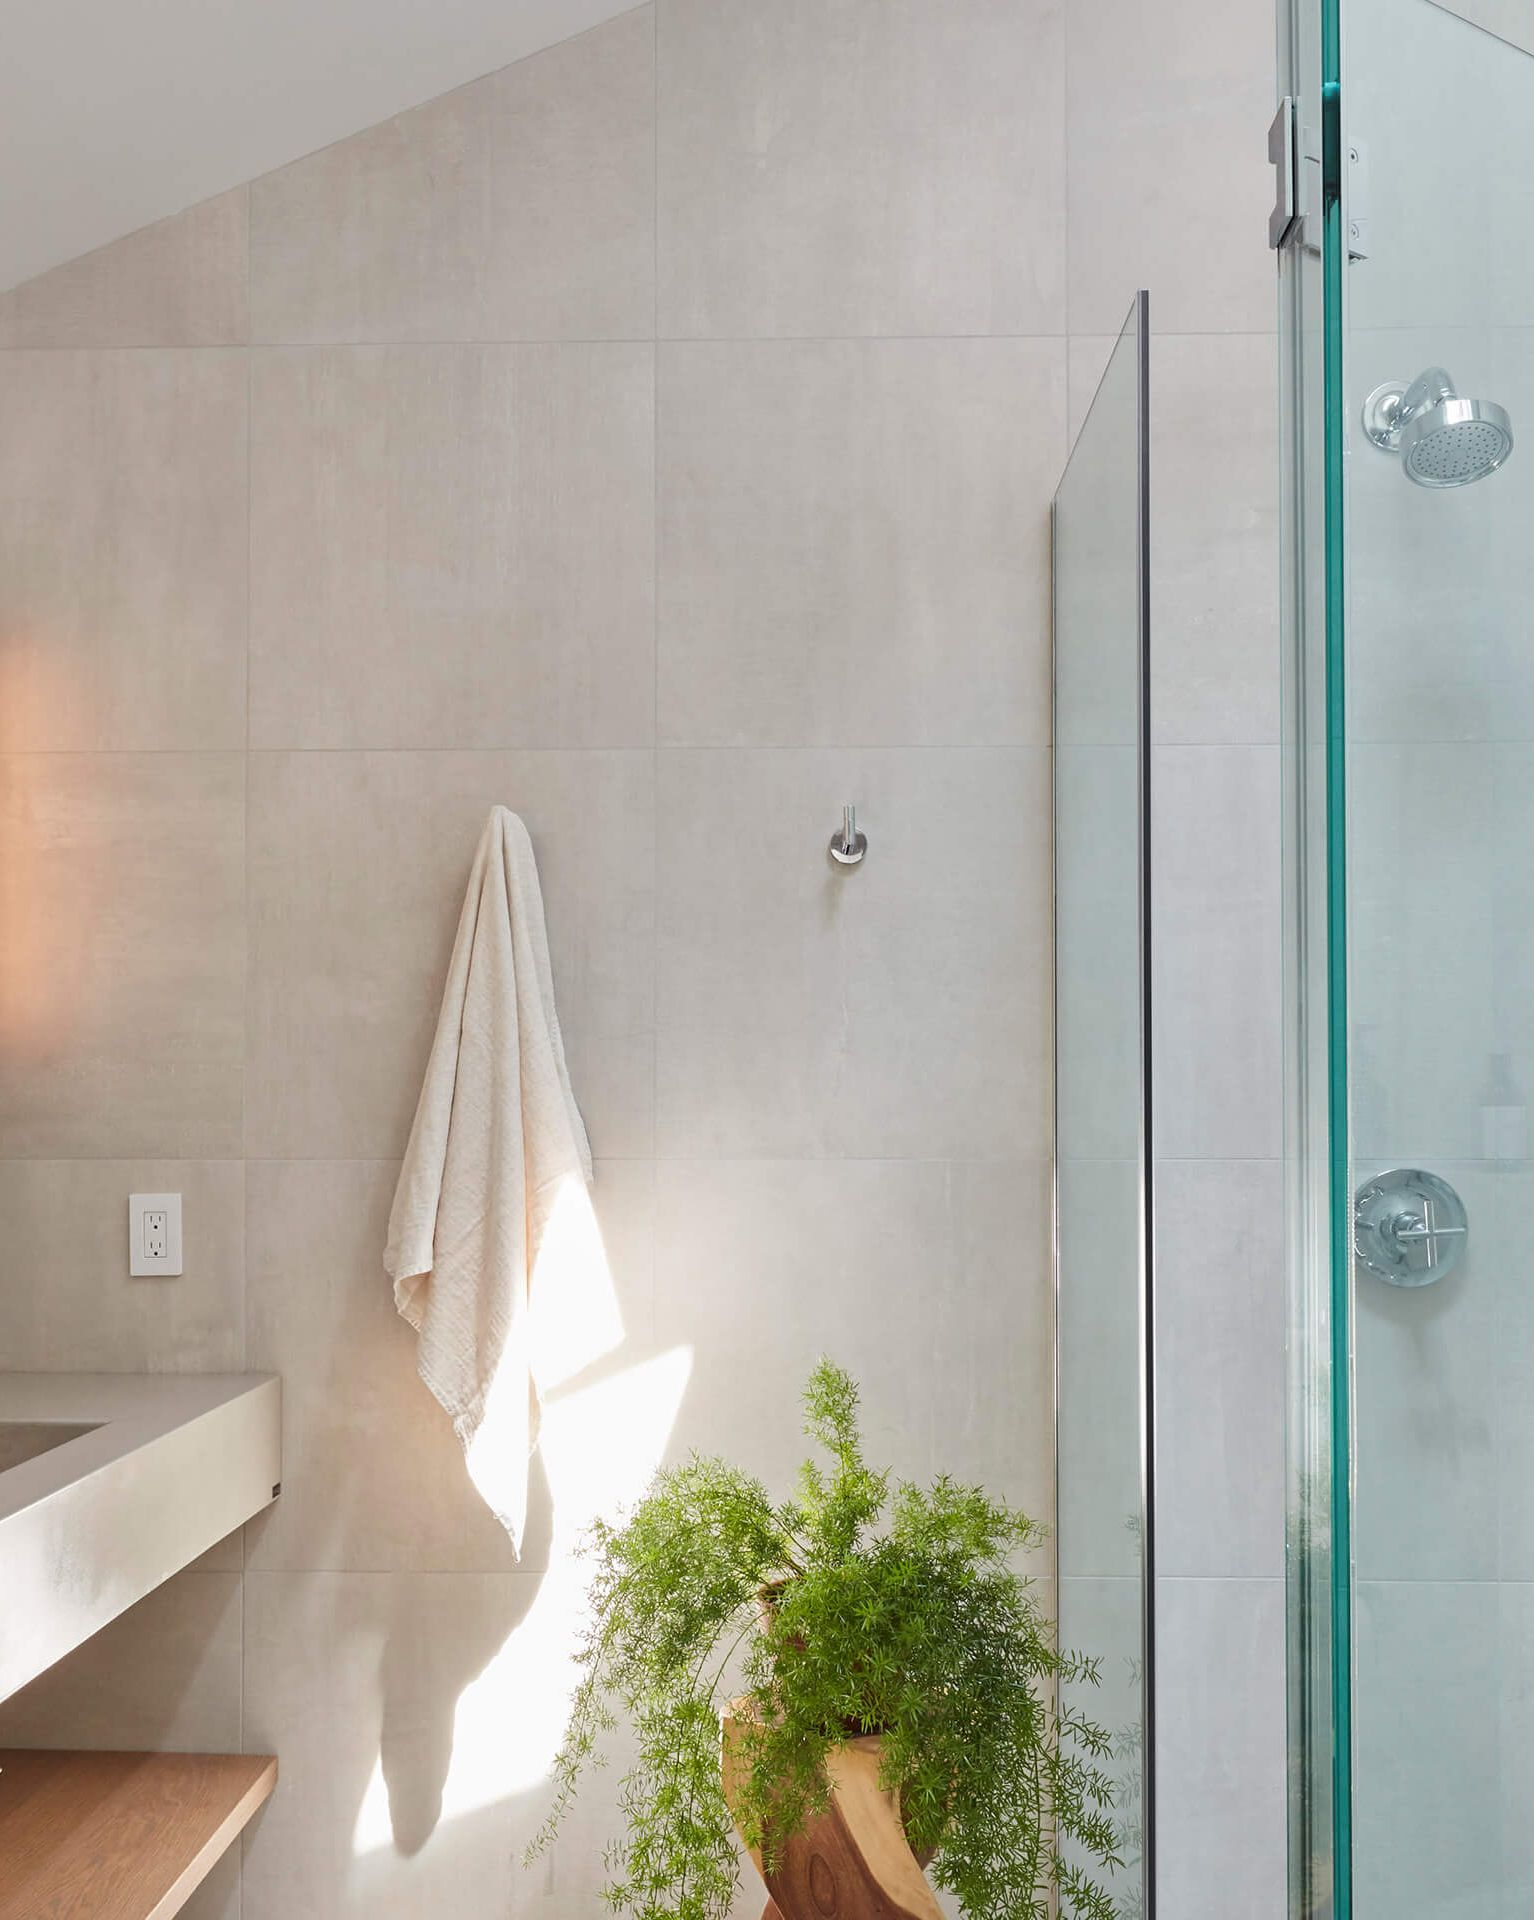 RBW Branch Sconce in a residential bathroom interior design project